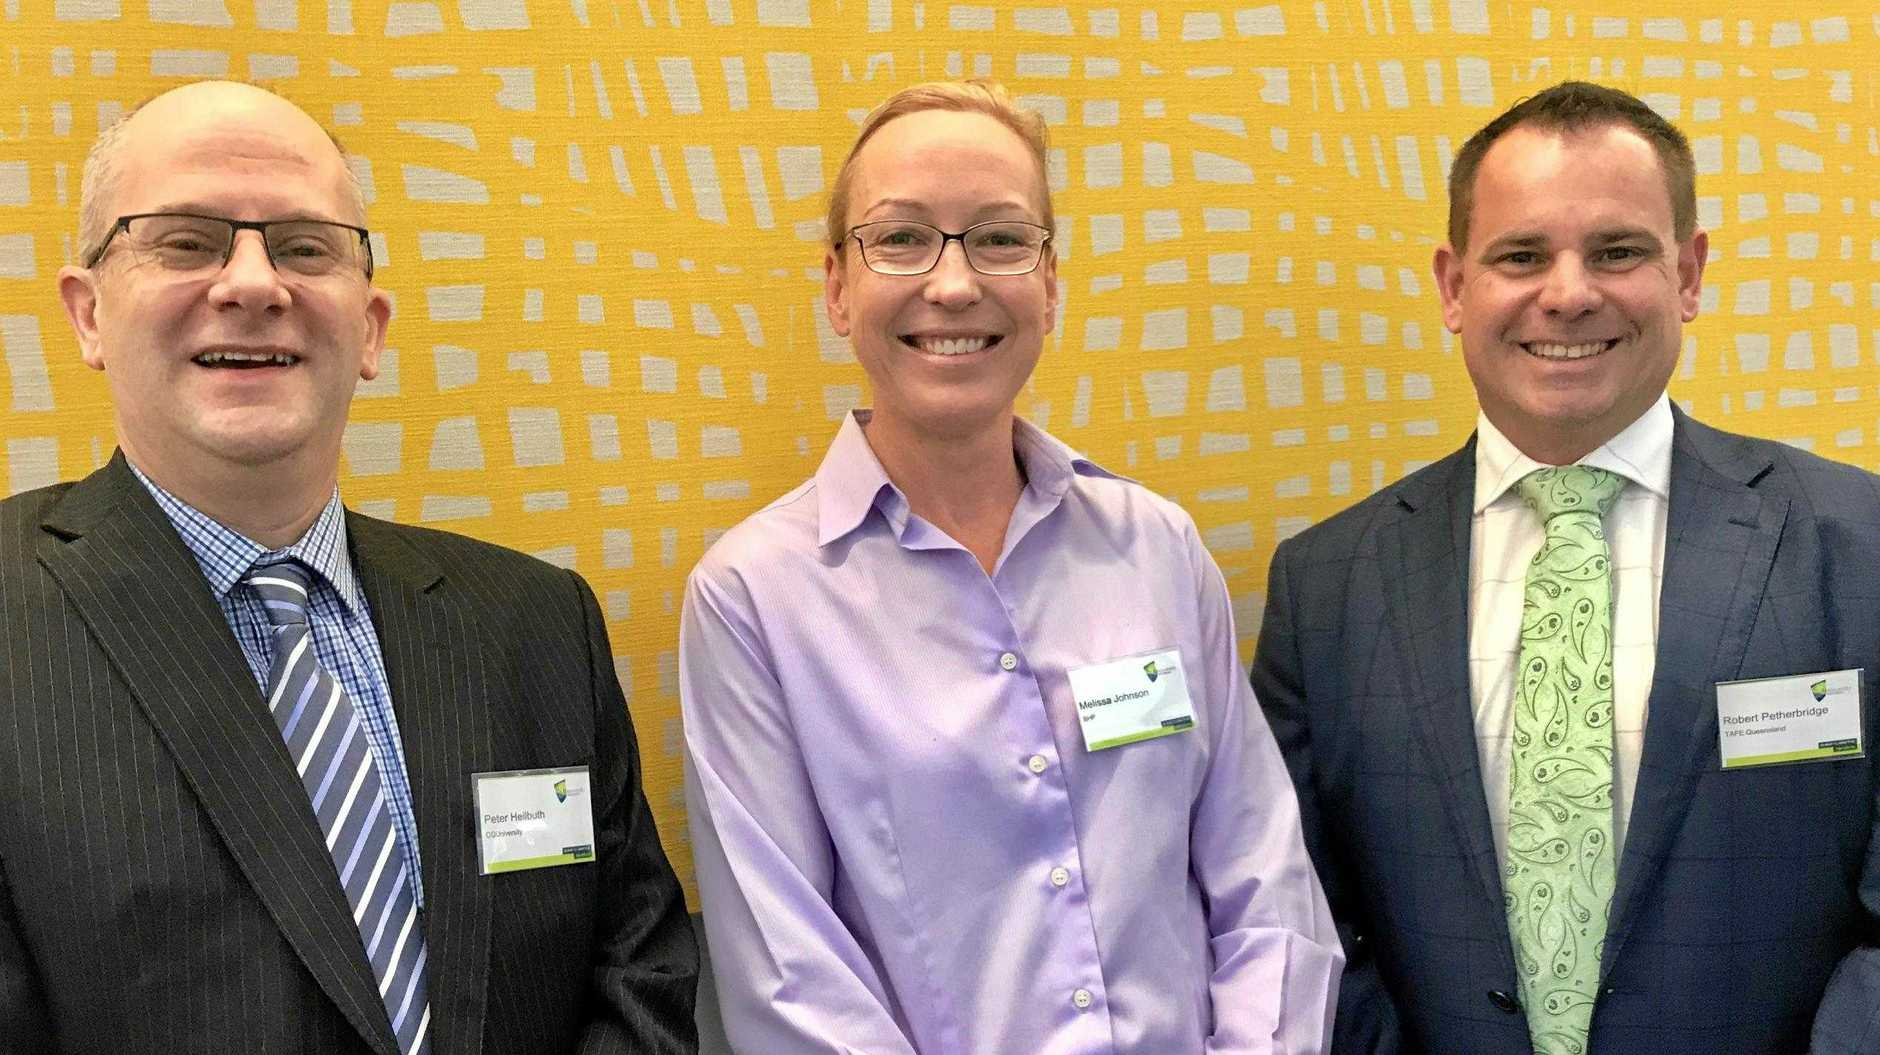 CQ University pro vice chancellor for VET Peter Heilbuth, Melissa Johnson from BHP and Robert Petherbridge from TAFE Queensland.